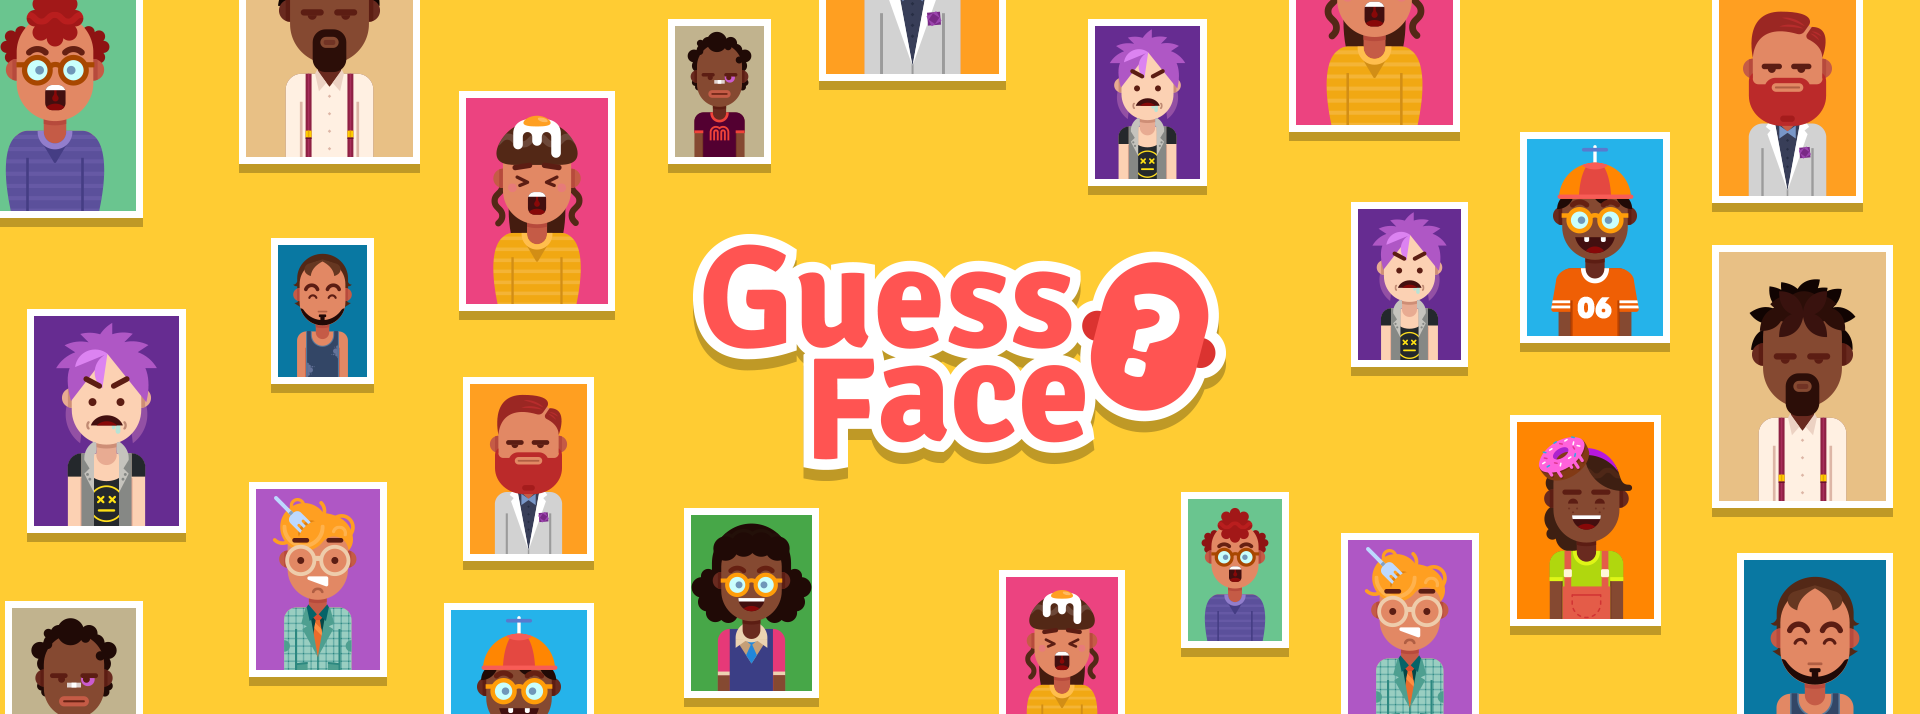 Guess Face